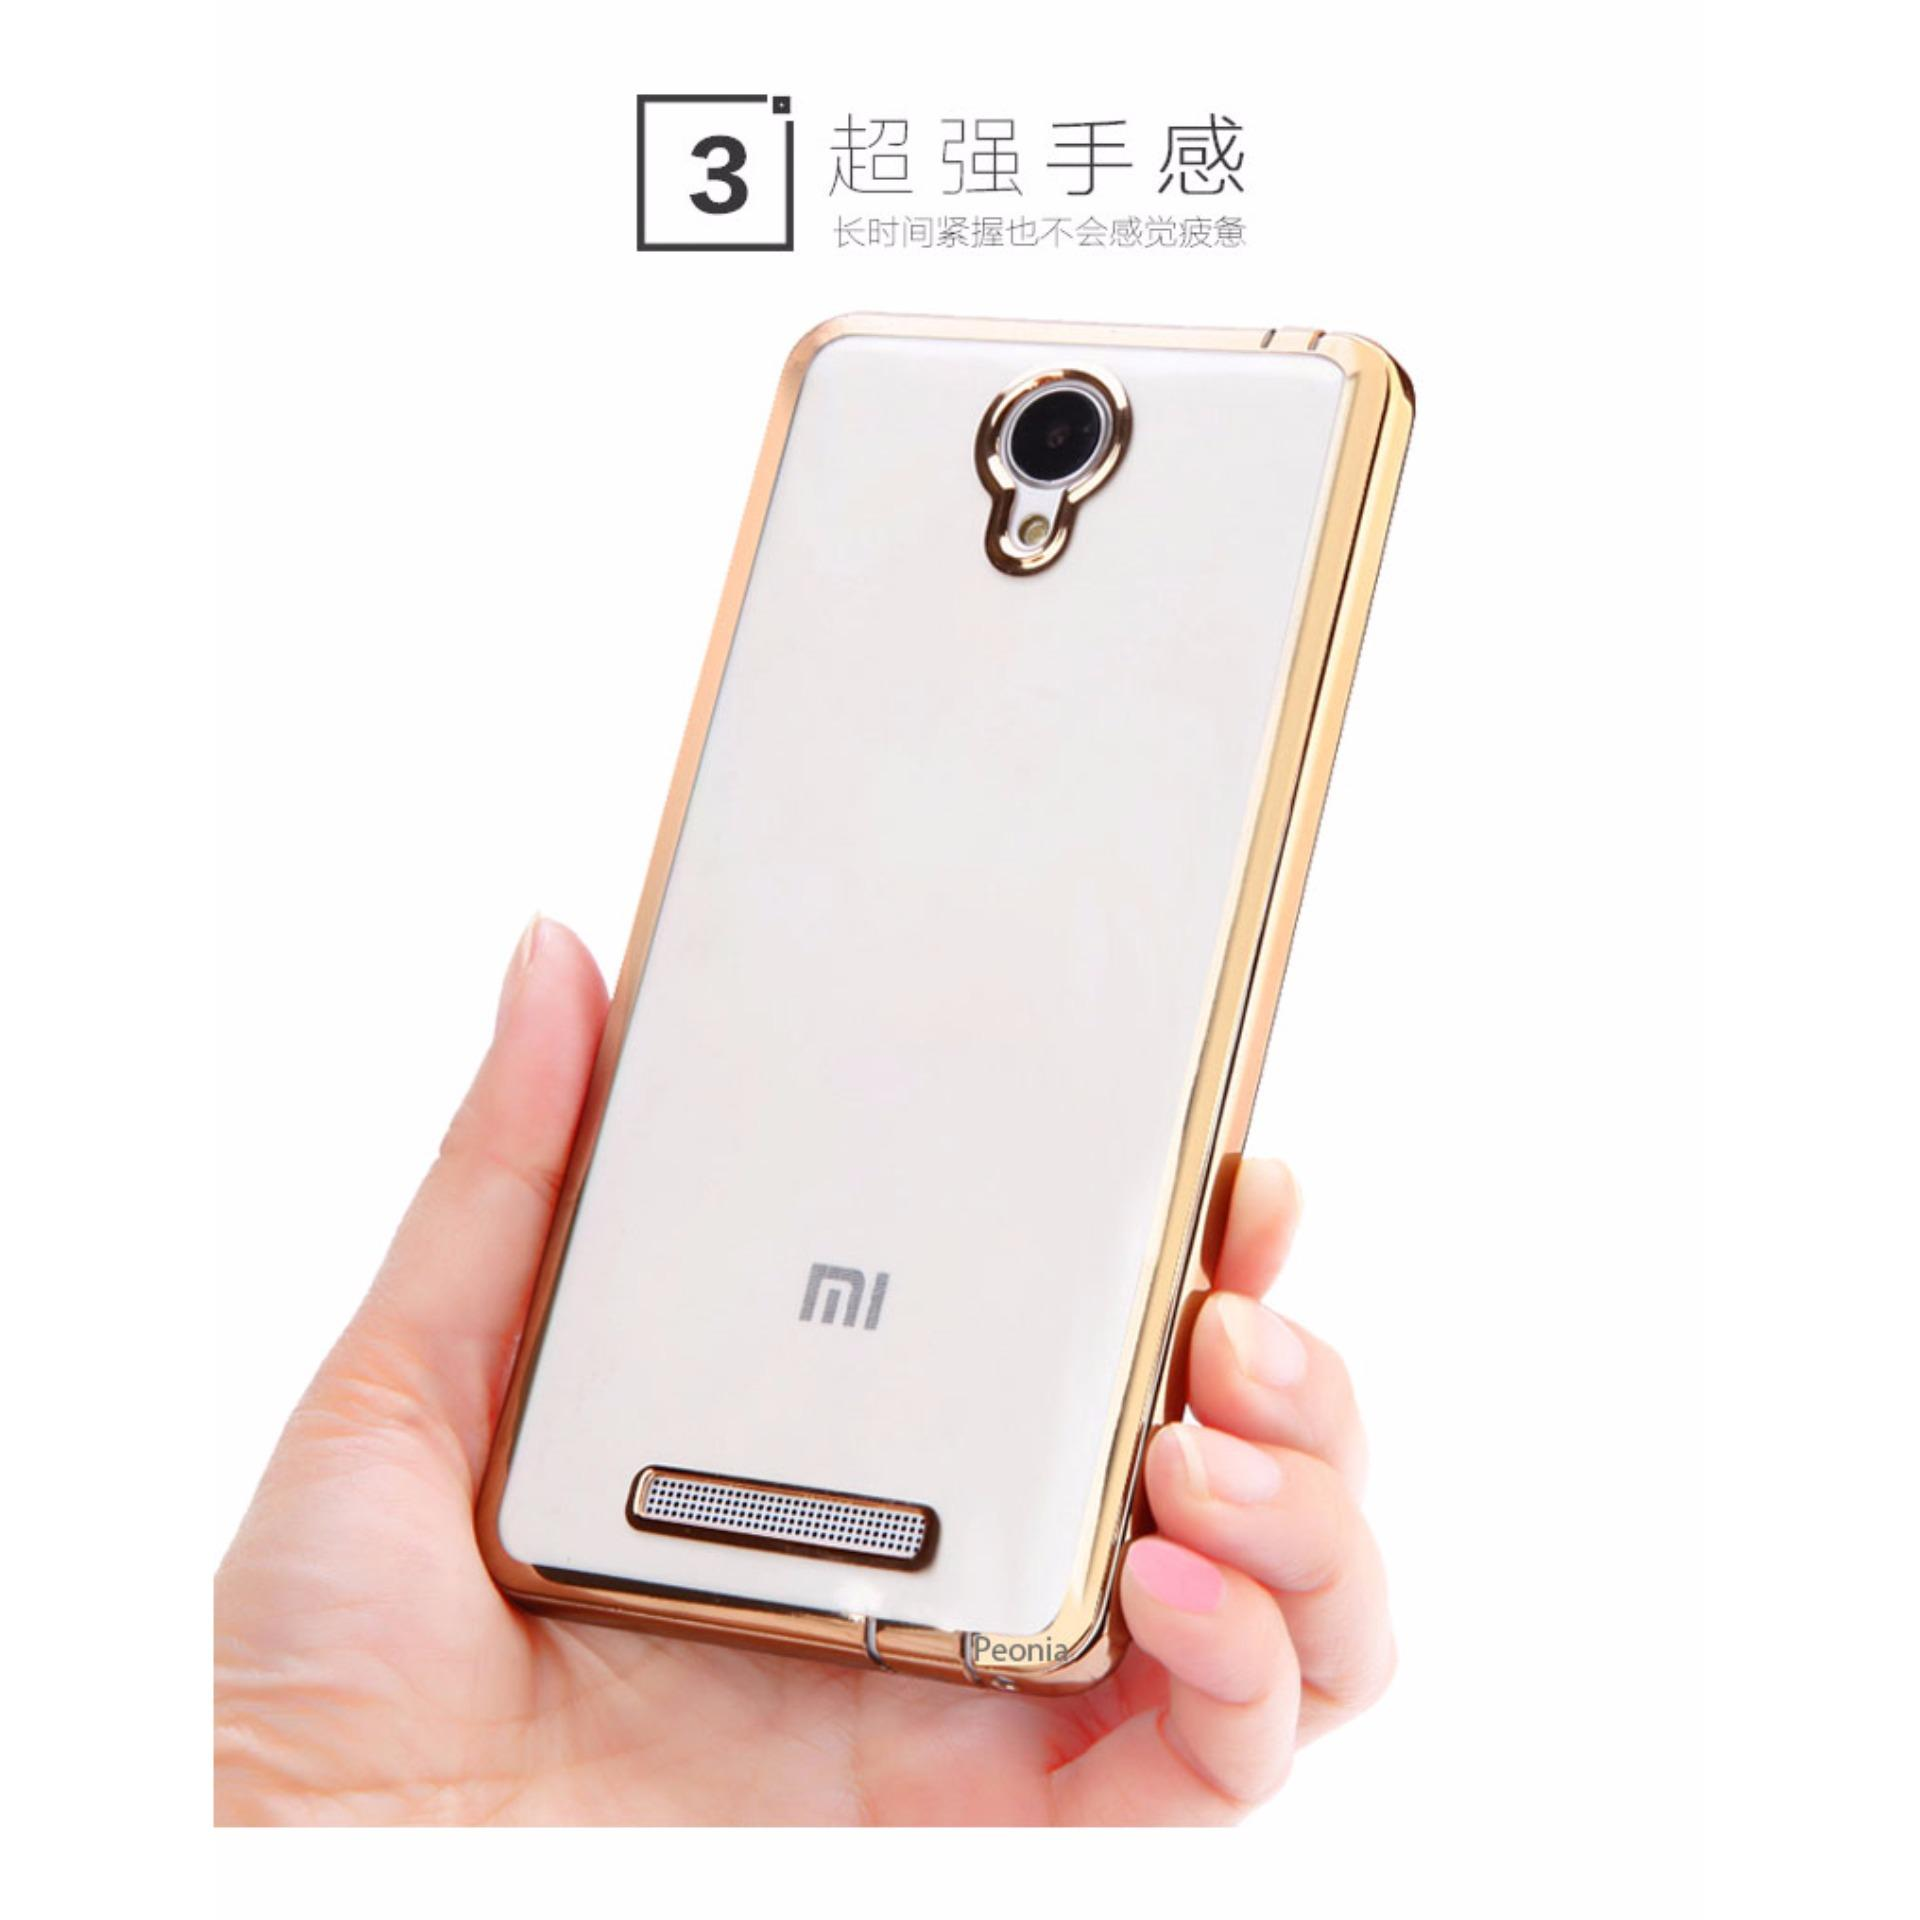 Peonia Aircase Ultrathin Luxury Plating Gilded Crystal Clear Case Transparent Acrylic Xiaomi Redmi Note 4x Snapdragon Tg Merah For 2